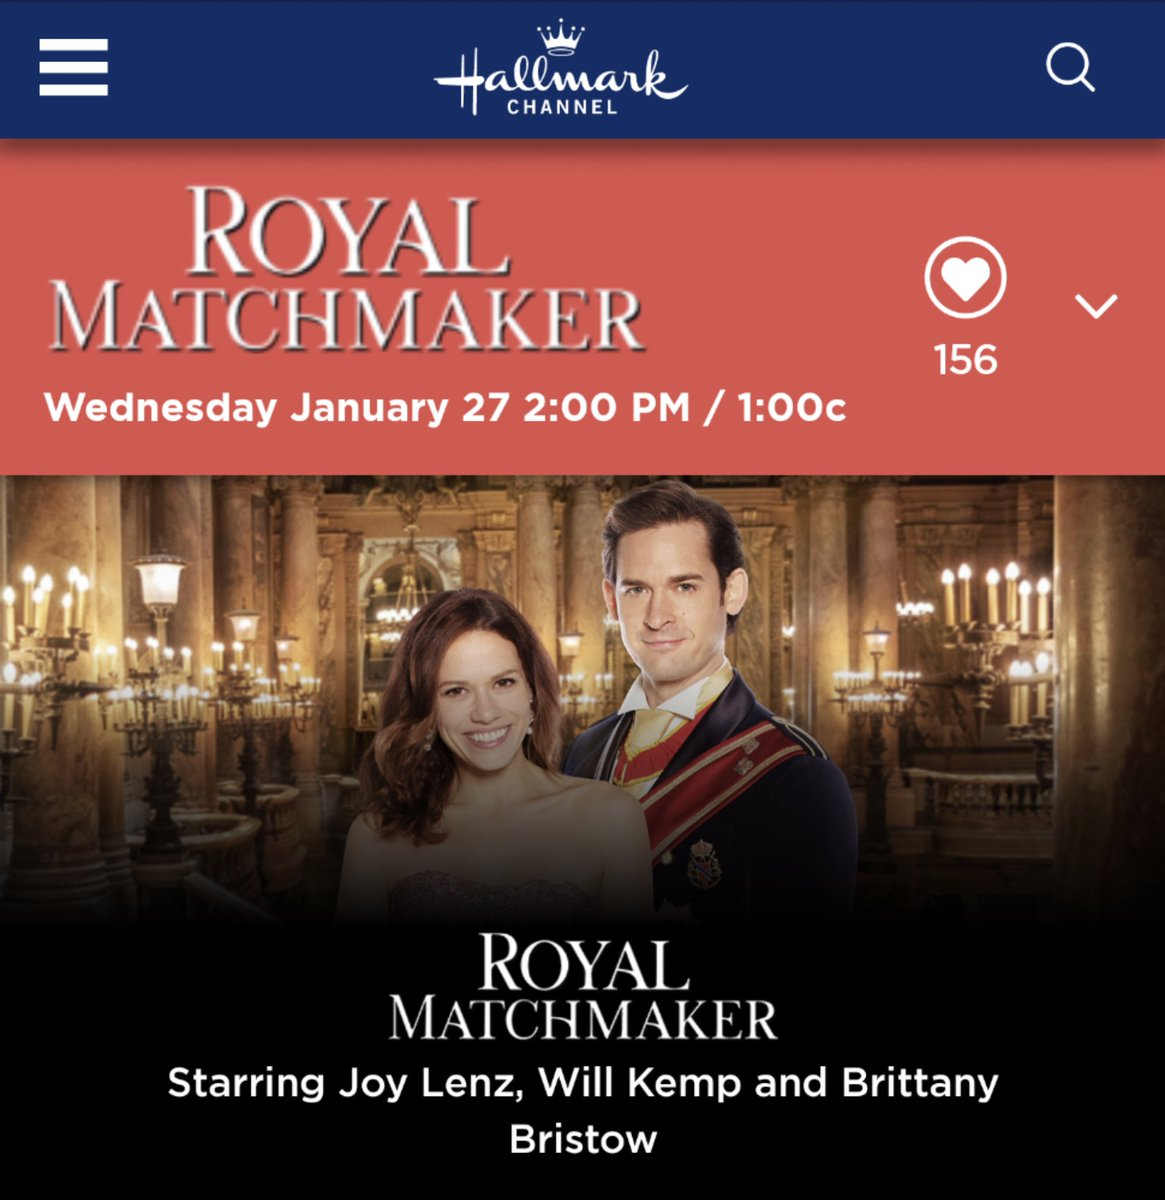 One week from today, Friends!  Loved @IamWillKemp  in #ChristmasWaltz?  You'll enjoy him with @BethanyJoyLenz  in #RoyalMatchmaker  @hallmarkchannel ! Be sure to DVR it! It's a keeper!